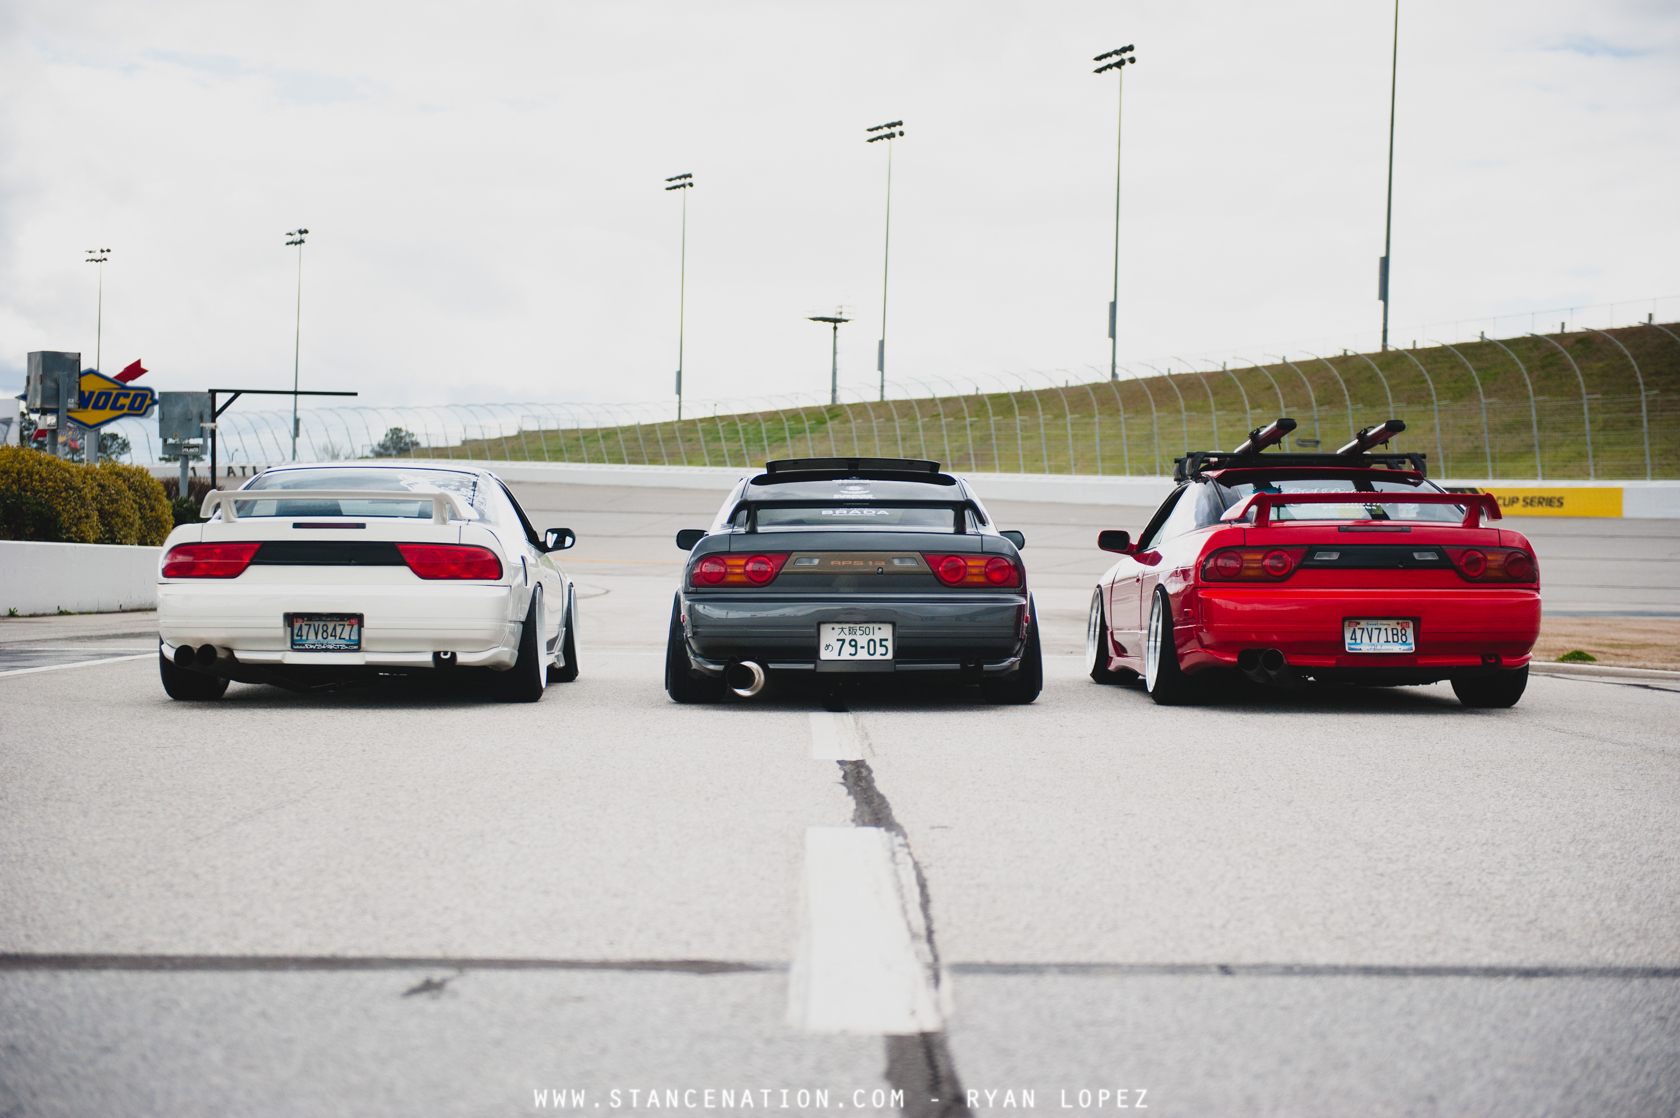 Import alliance summer meet 2015 photo coverage stancenation - Import Alliance 2014 Photo Coverage 132